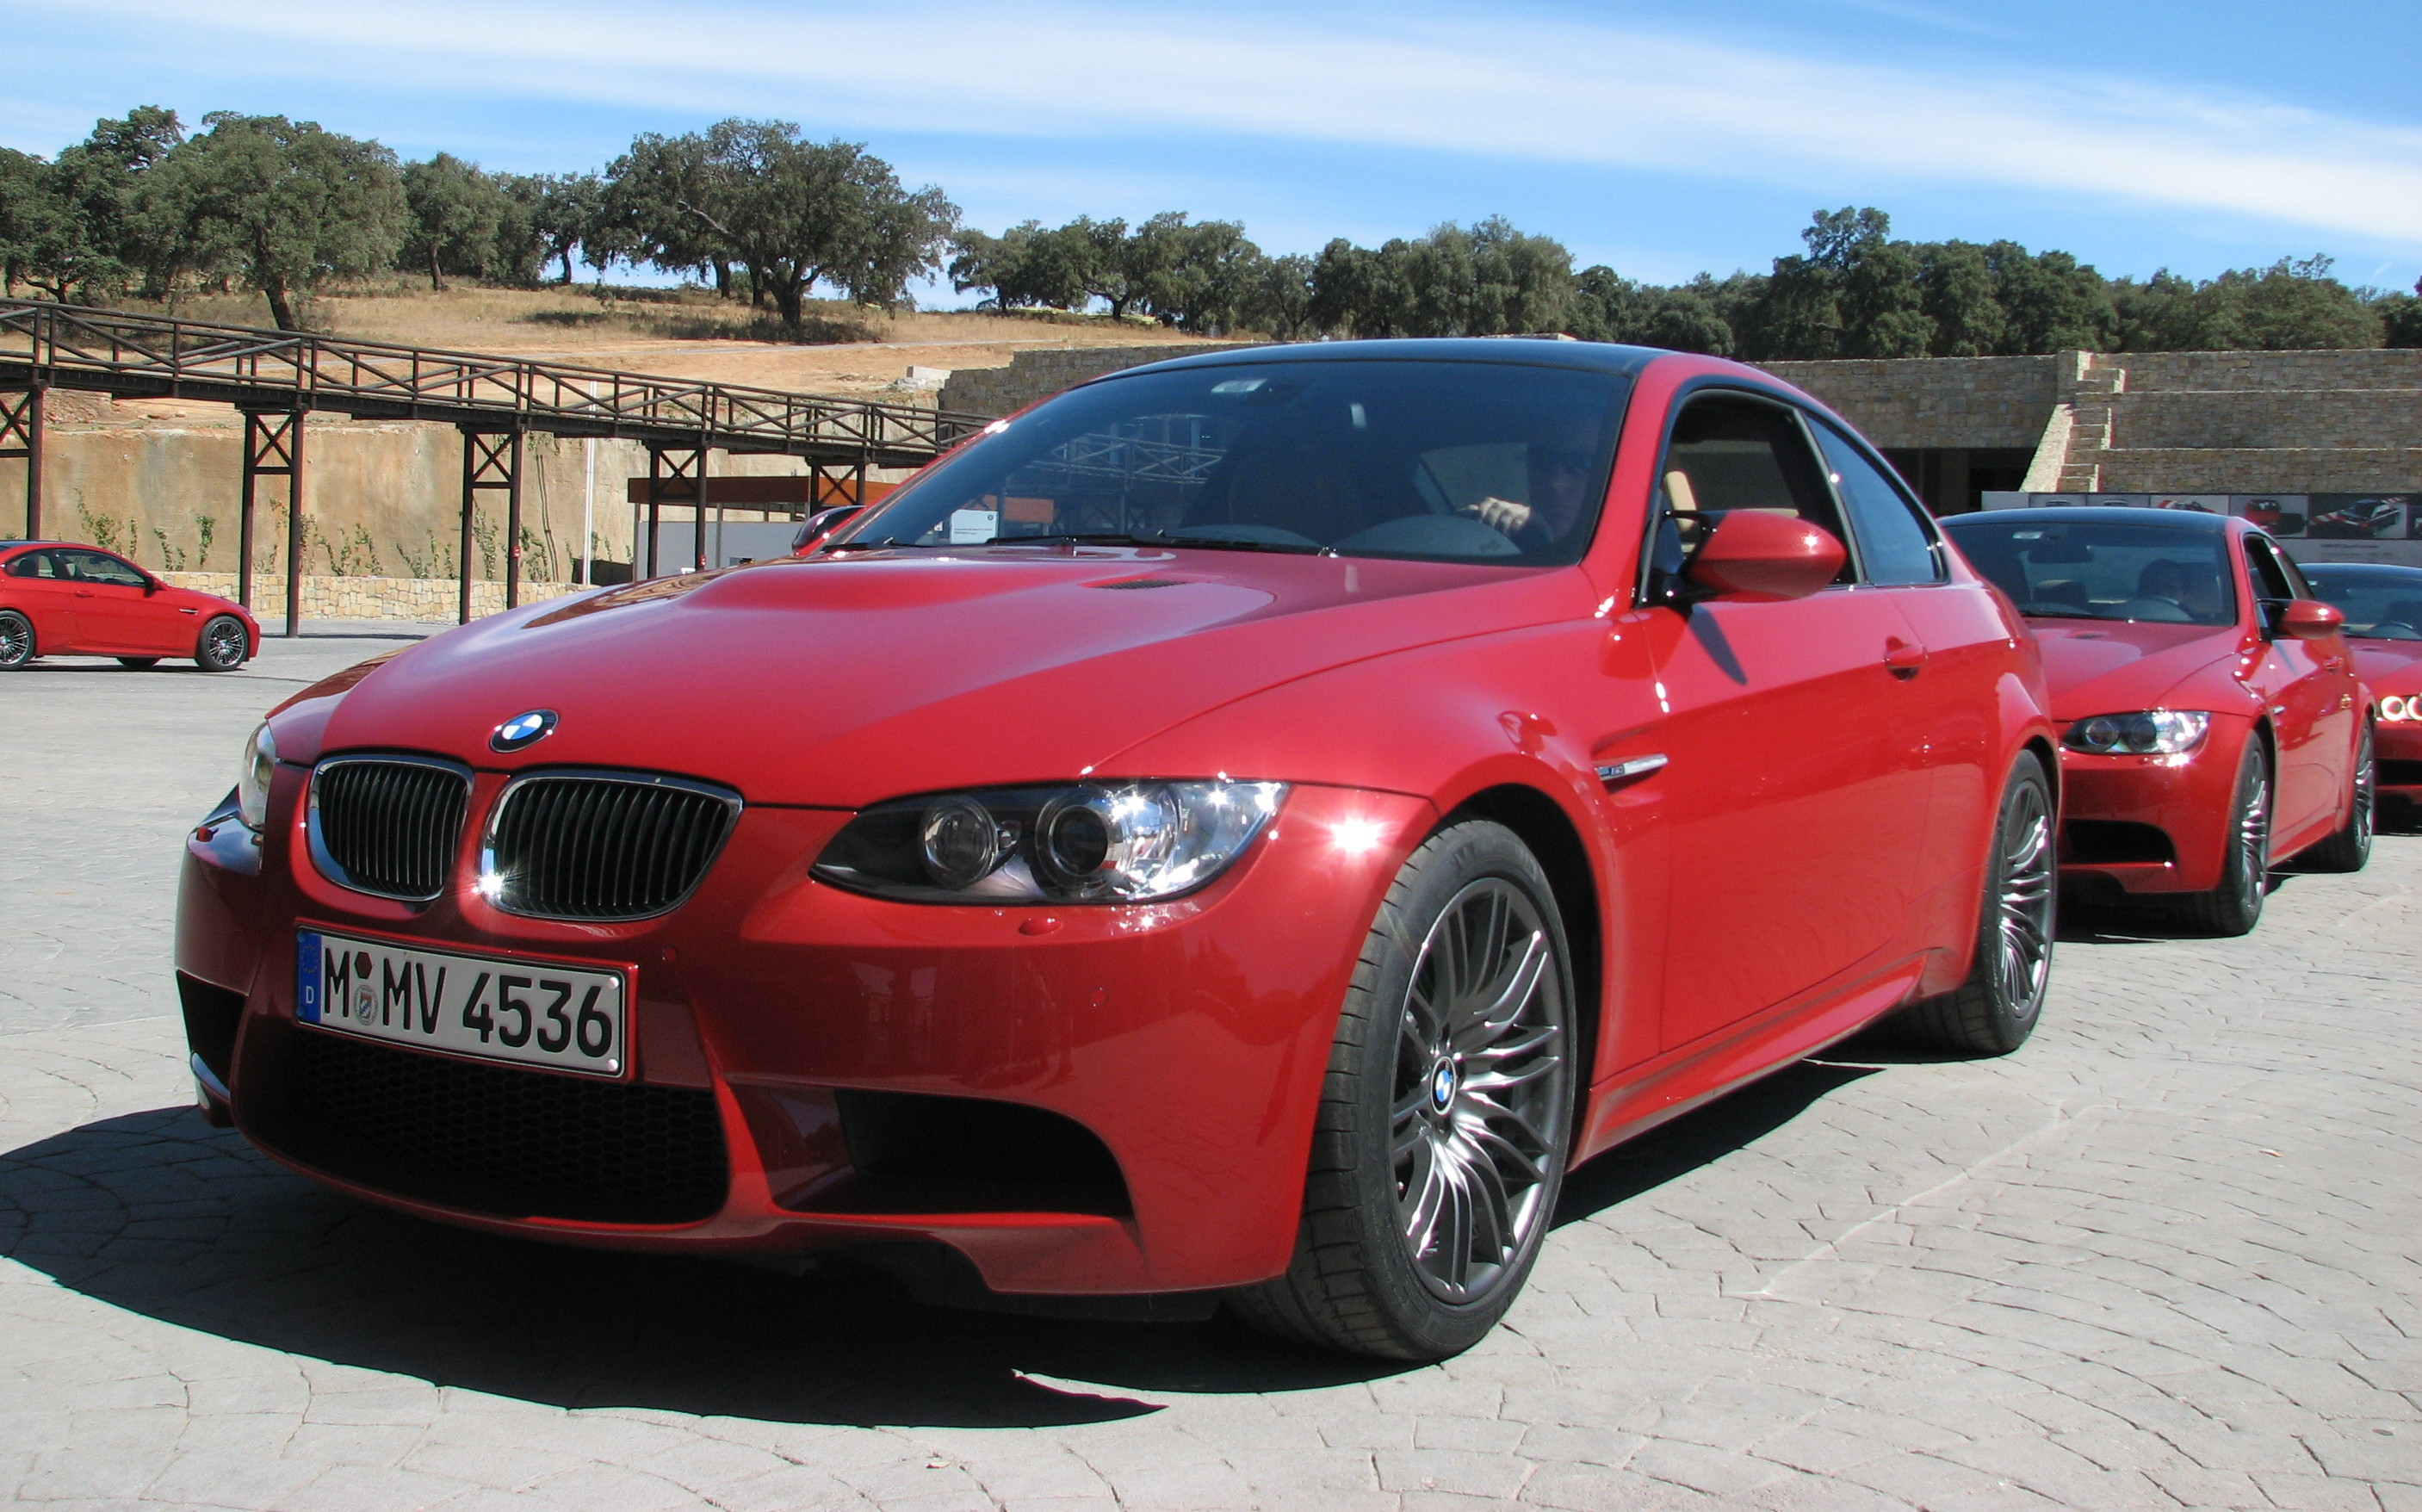 Bmw E90 Wiki >> File:BMW M3 E92 coupe front.jpg - Wikimedia Commons